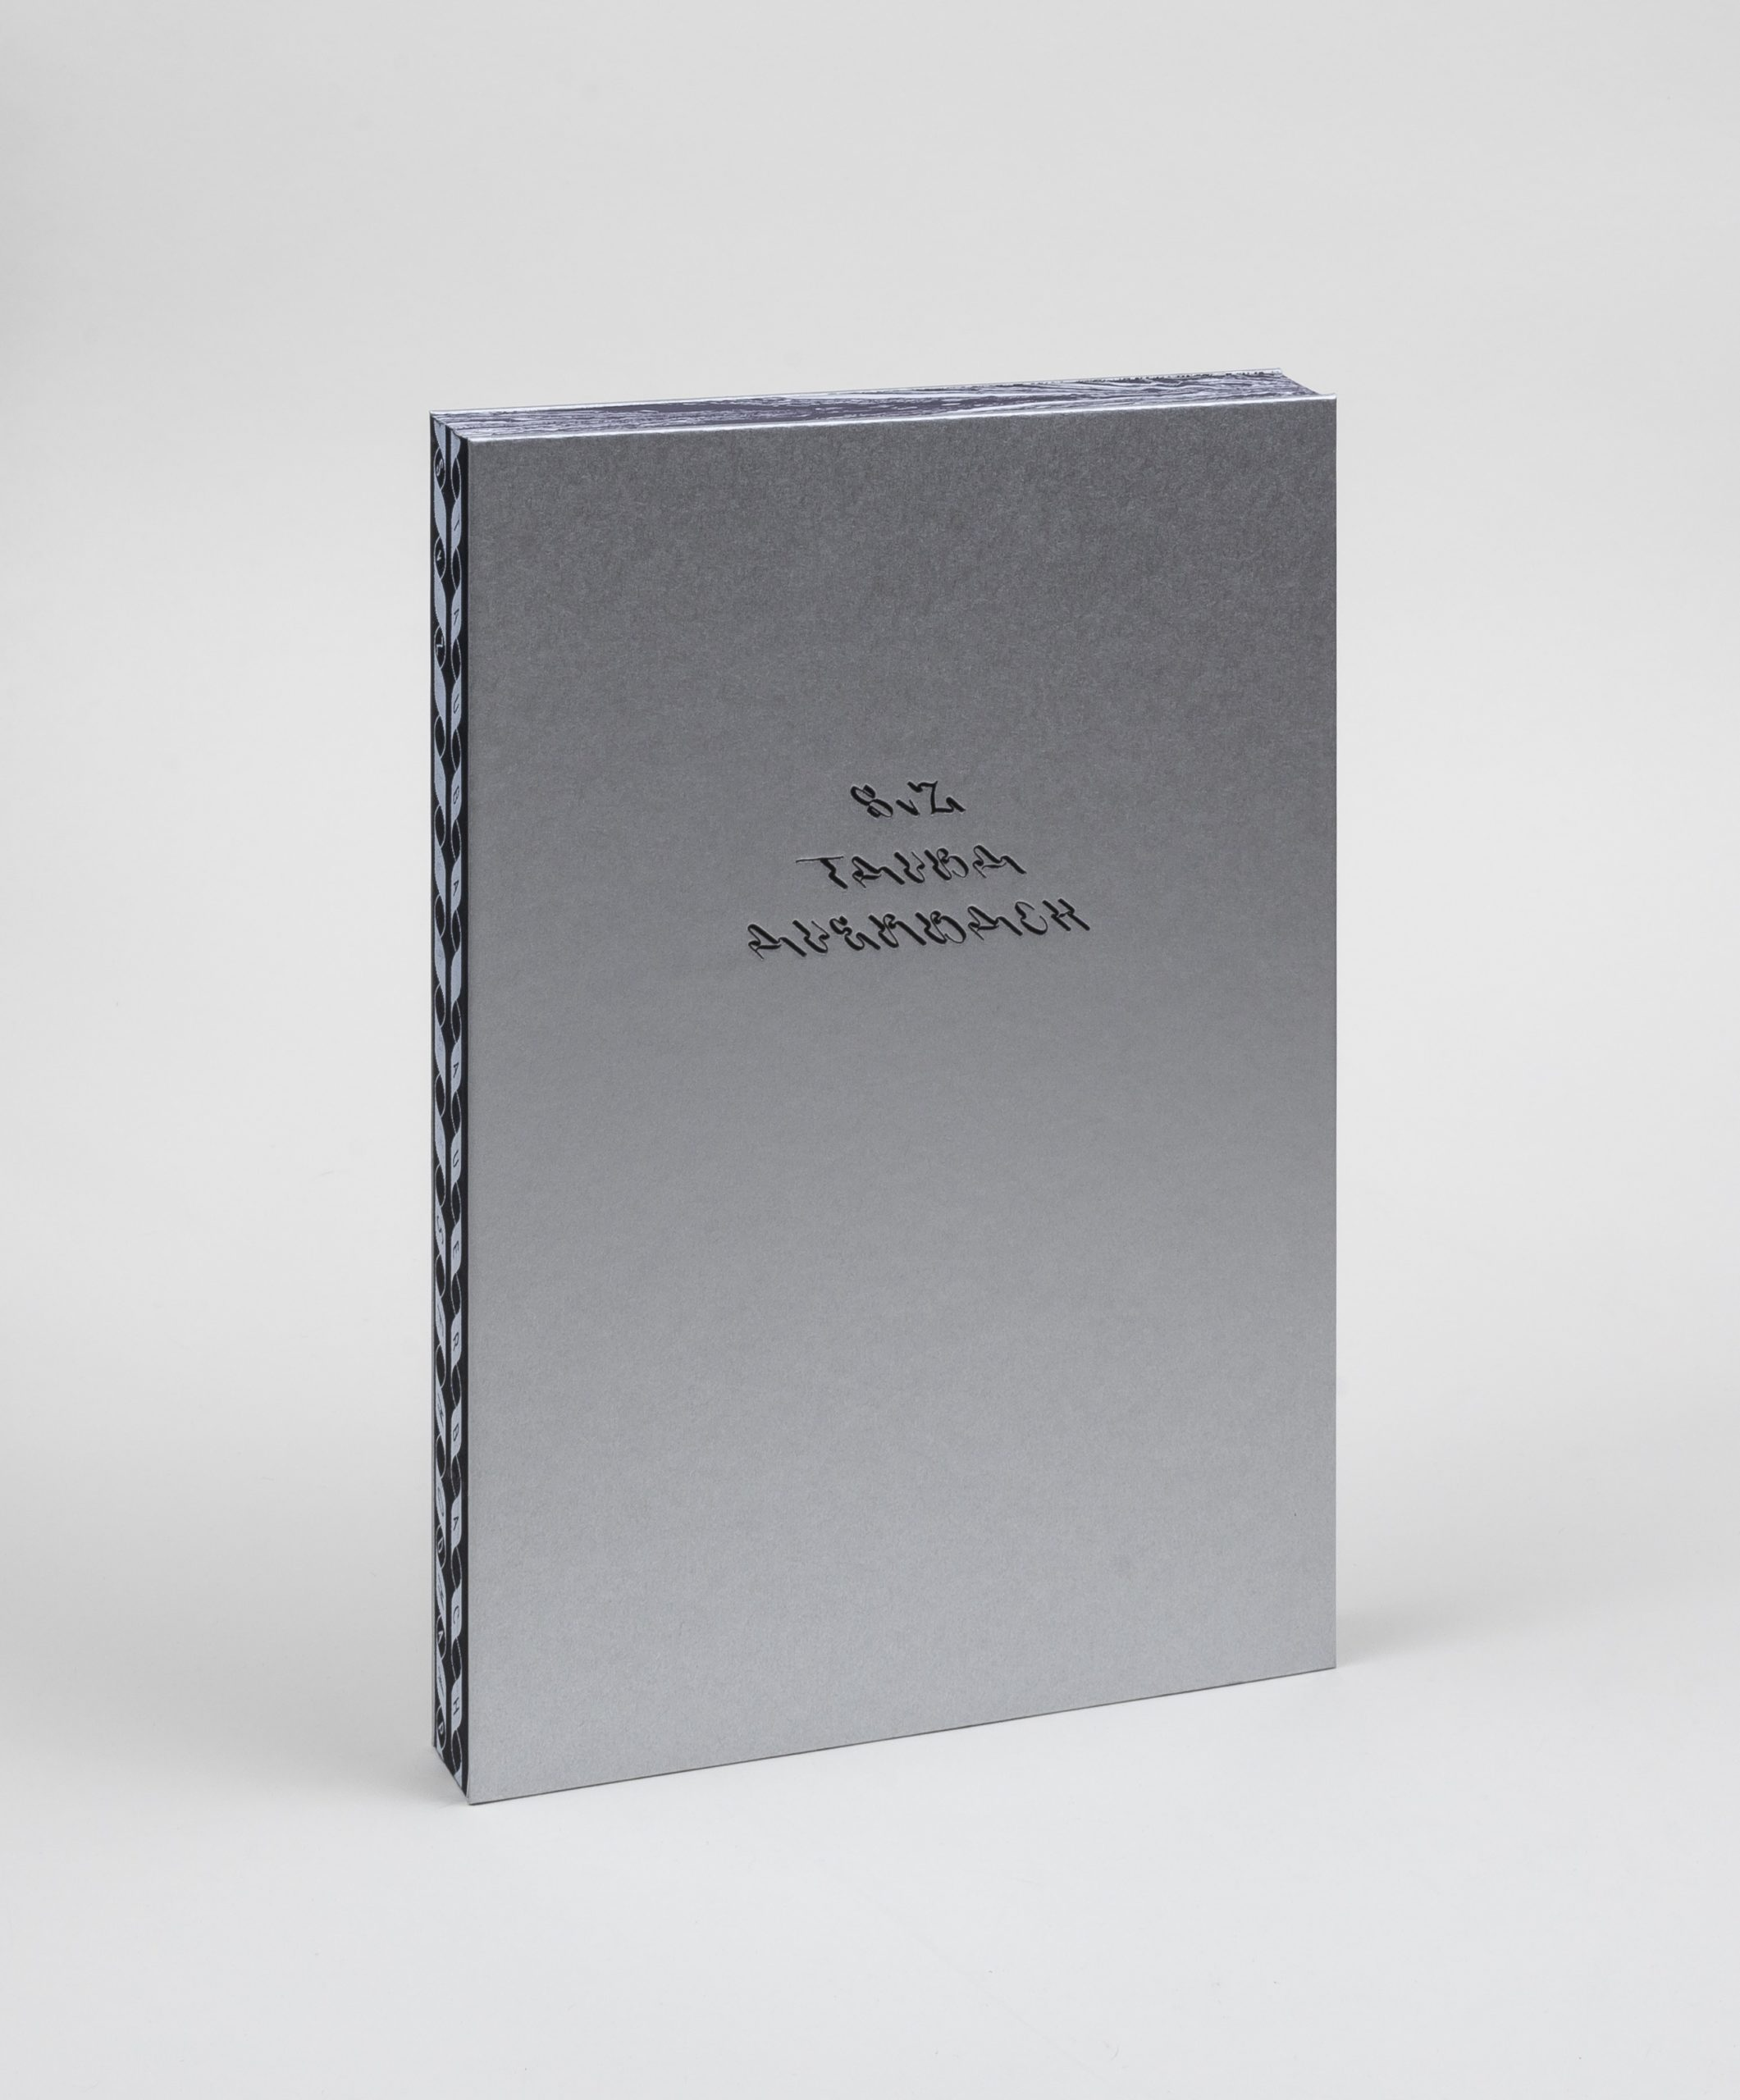 "Image of a book standing upright. The book has a silver cover with ""S v Z Tauba Auerbach on the cover"